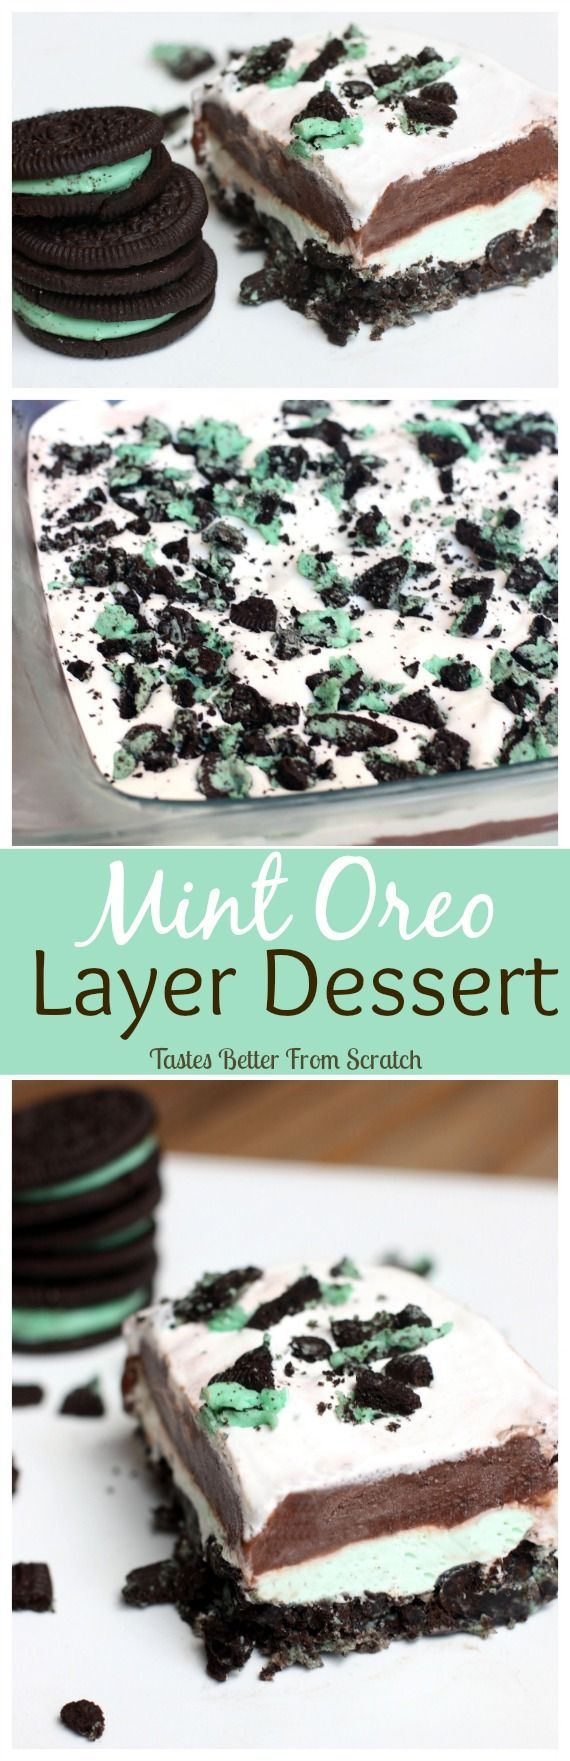 Mint Oreo Layer Dessert on MyRecipeMagic.com  - An Easy No-bake dessert that everyone will LOVE!